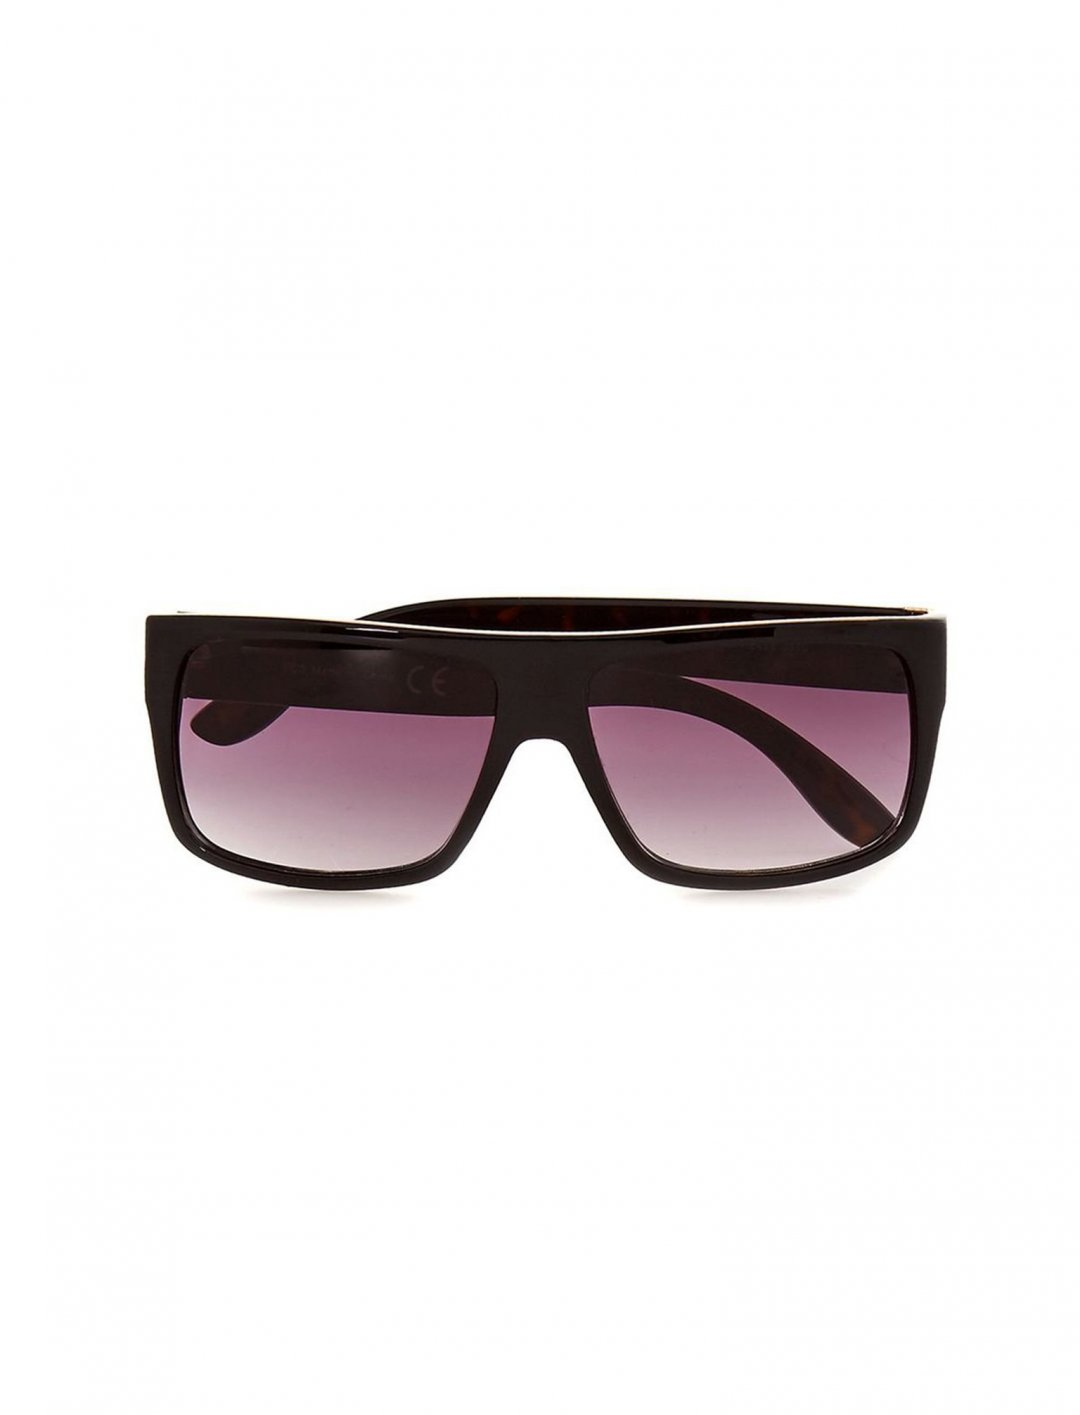 "Topman ortoiseshell Framed Sunglasses {""id"":16,""product_section_id"":1,""name"":""Accessories"",""order"":15} Topman"